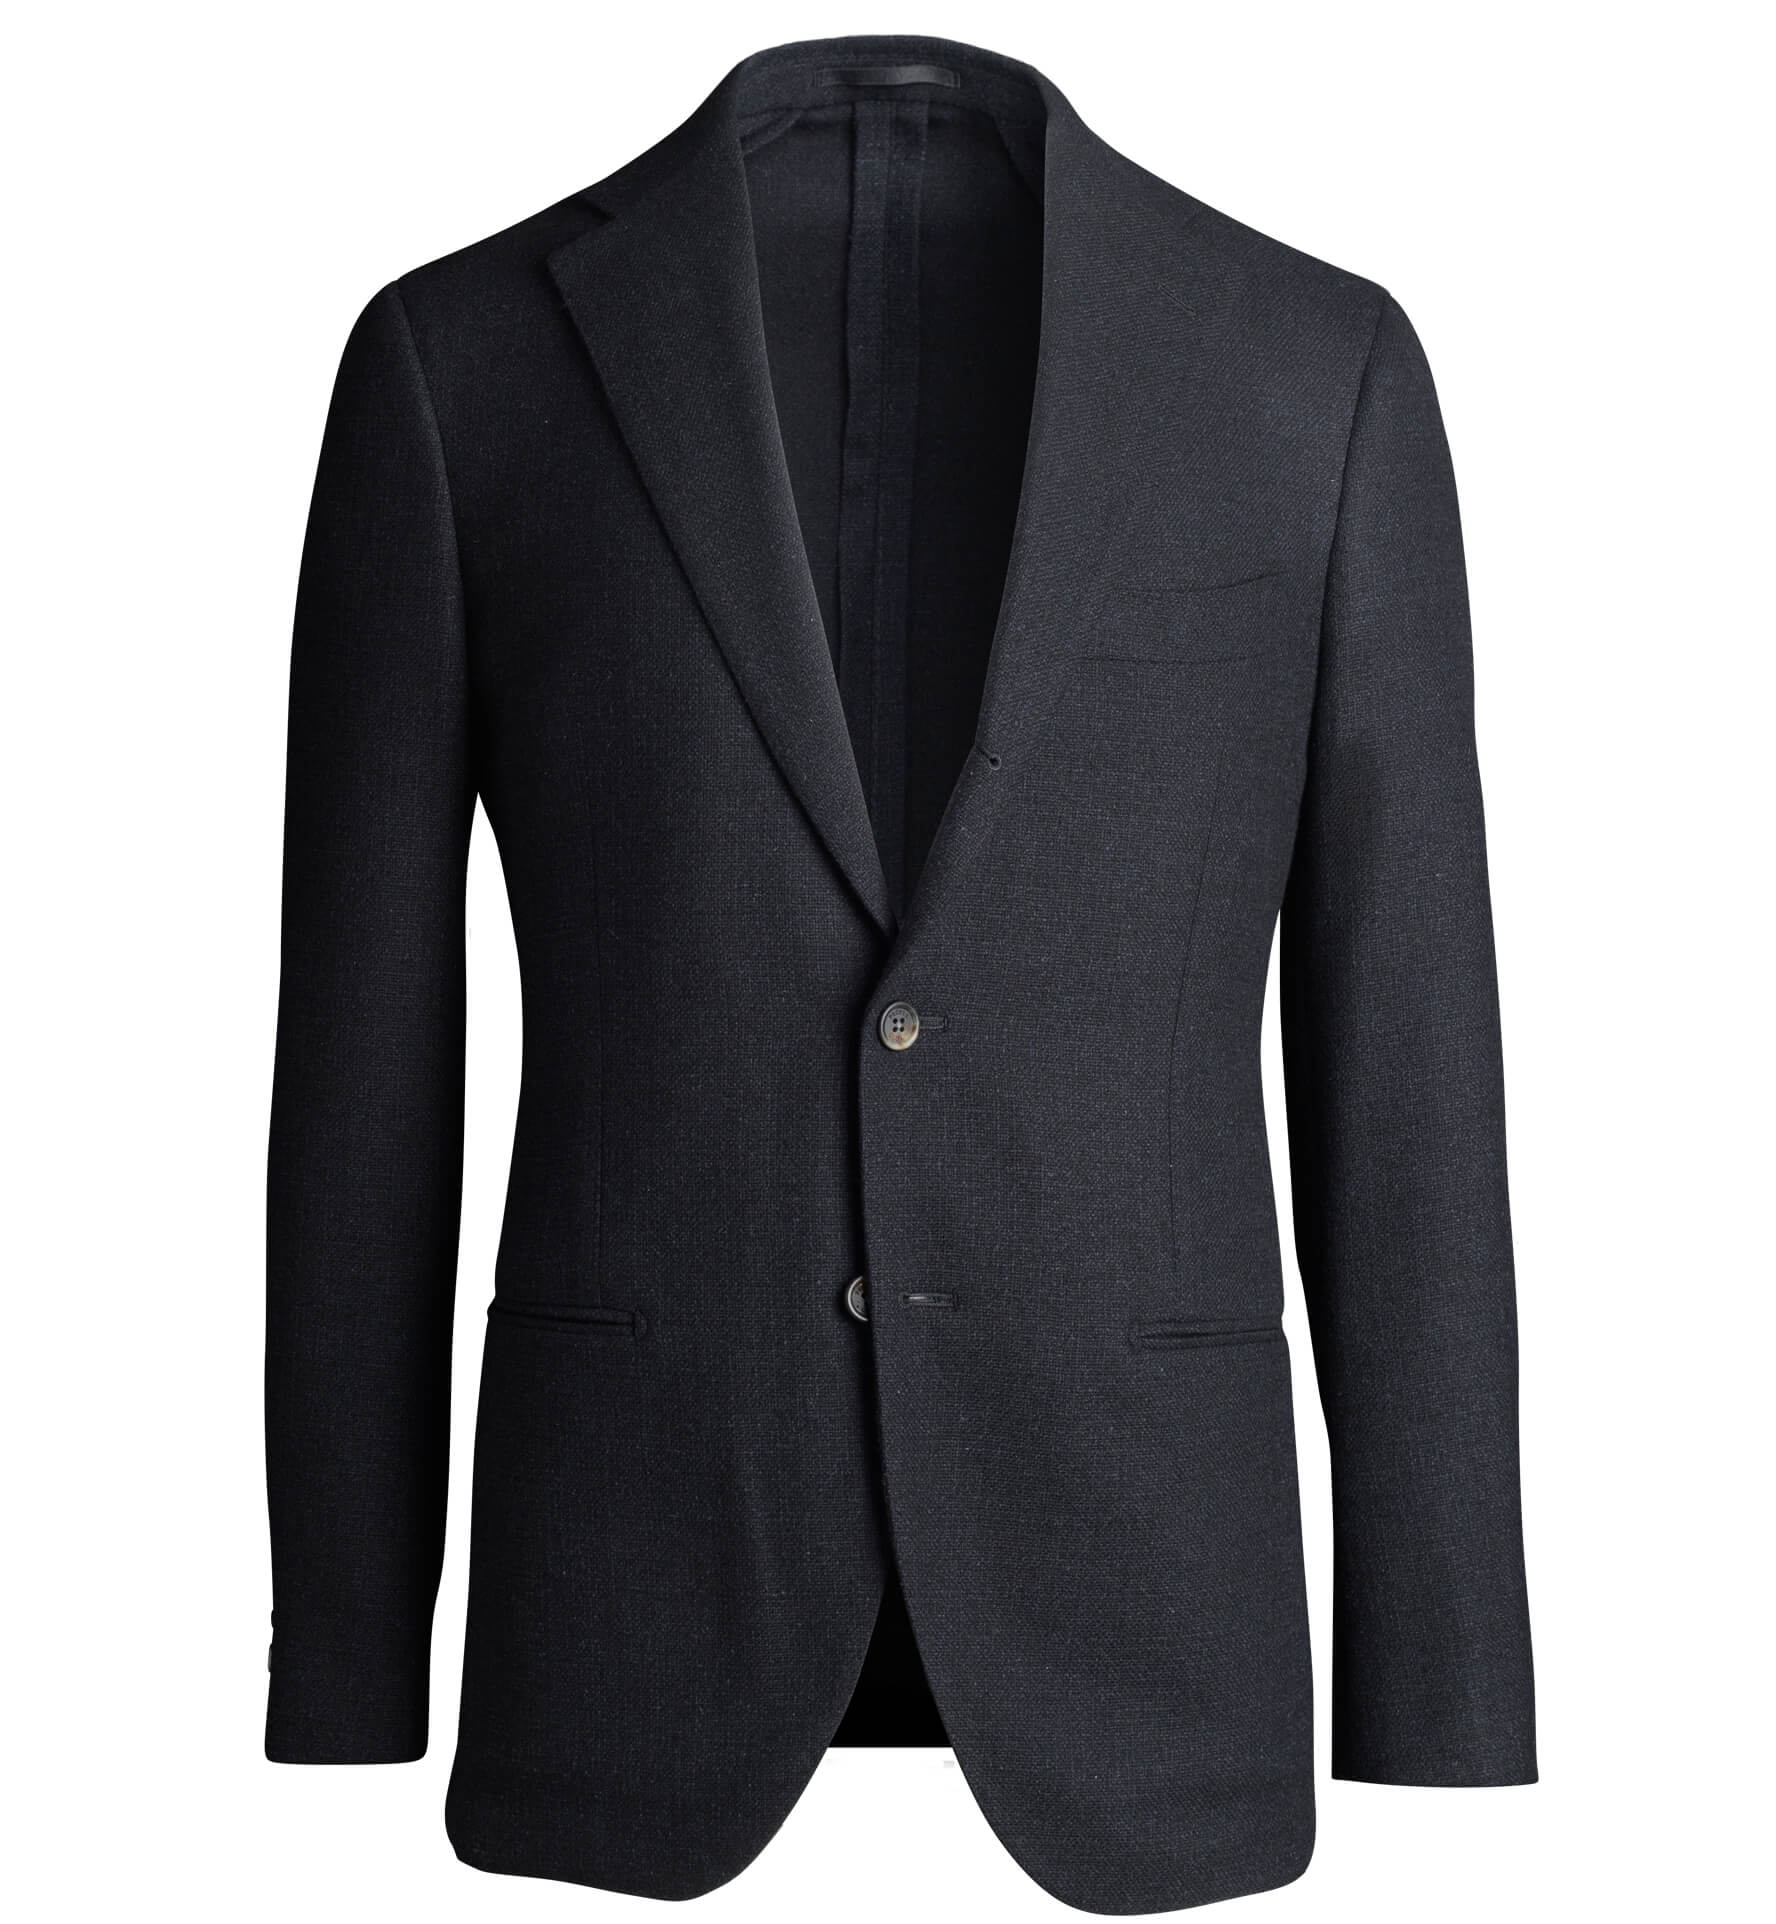 Zoom Image of Bedford Black Wool and Silk Jacket